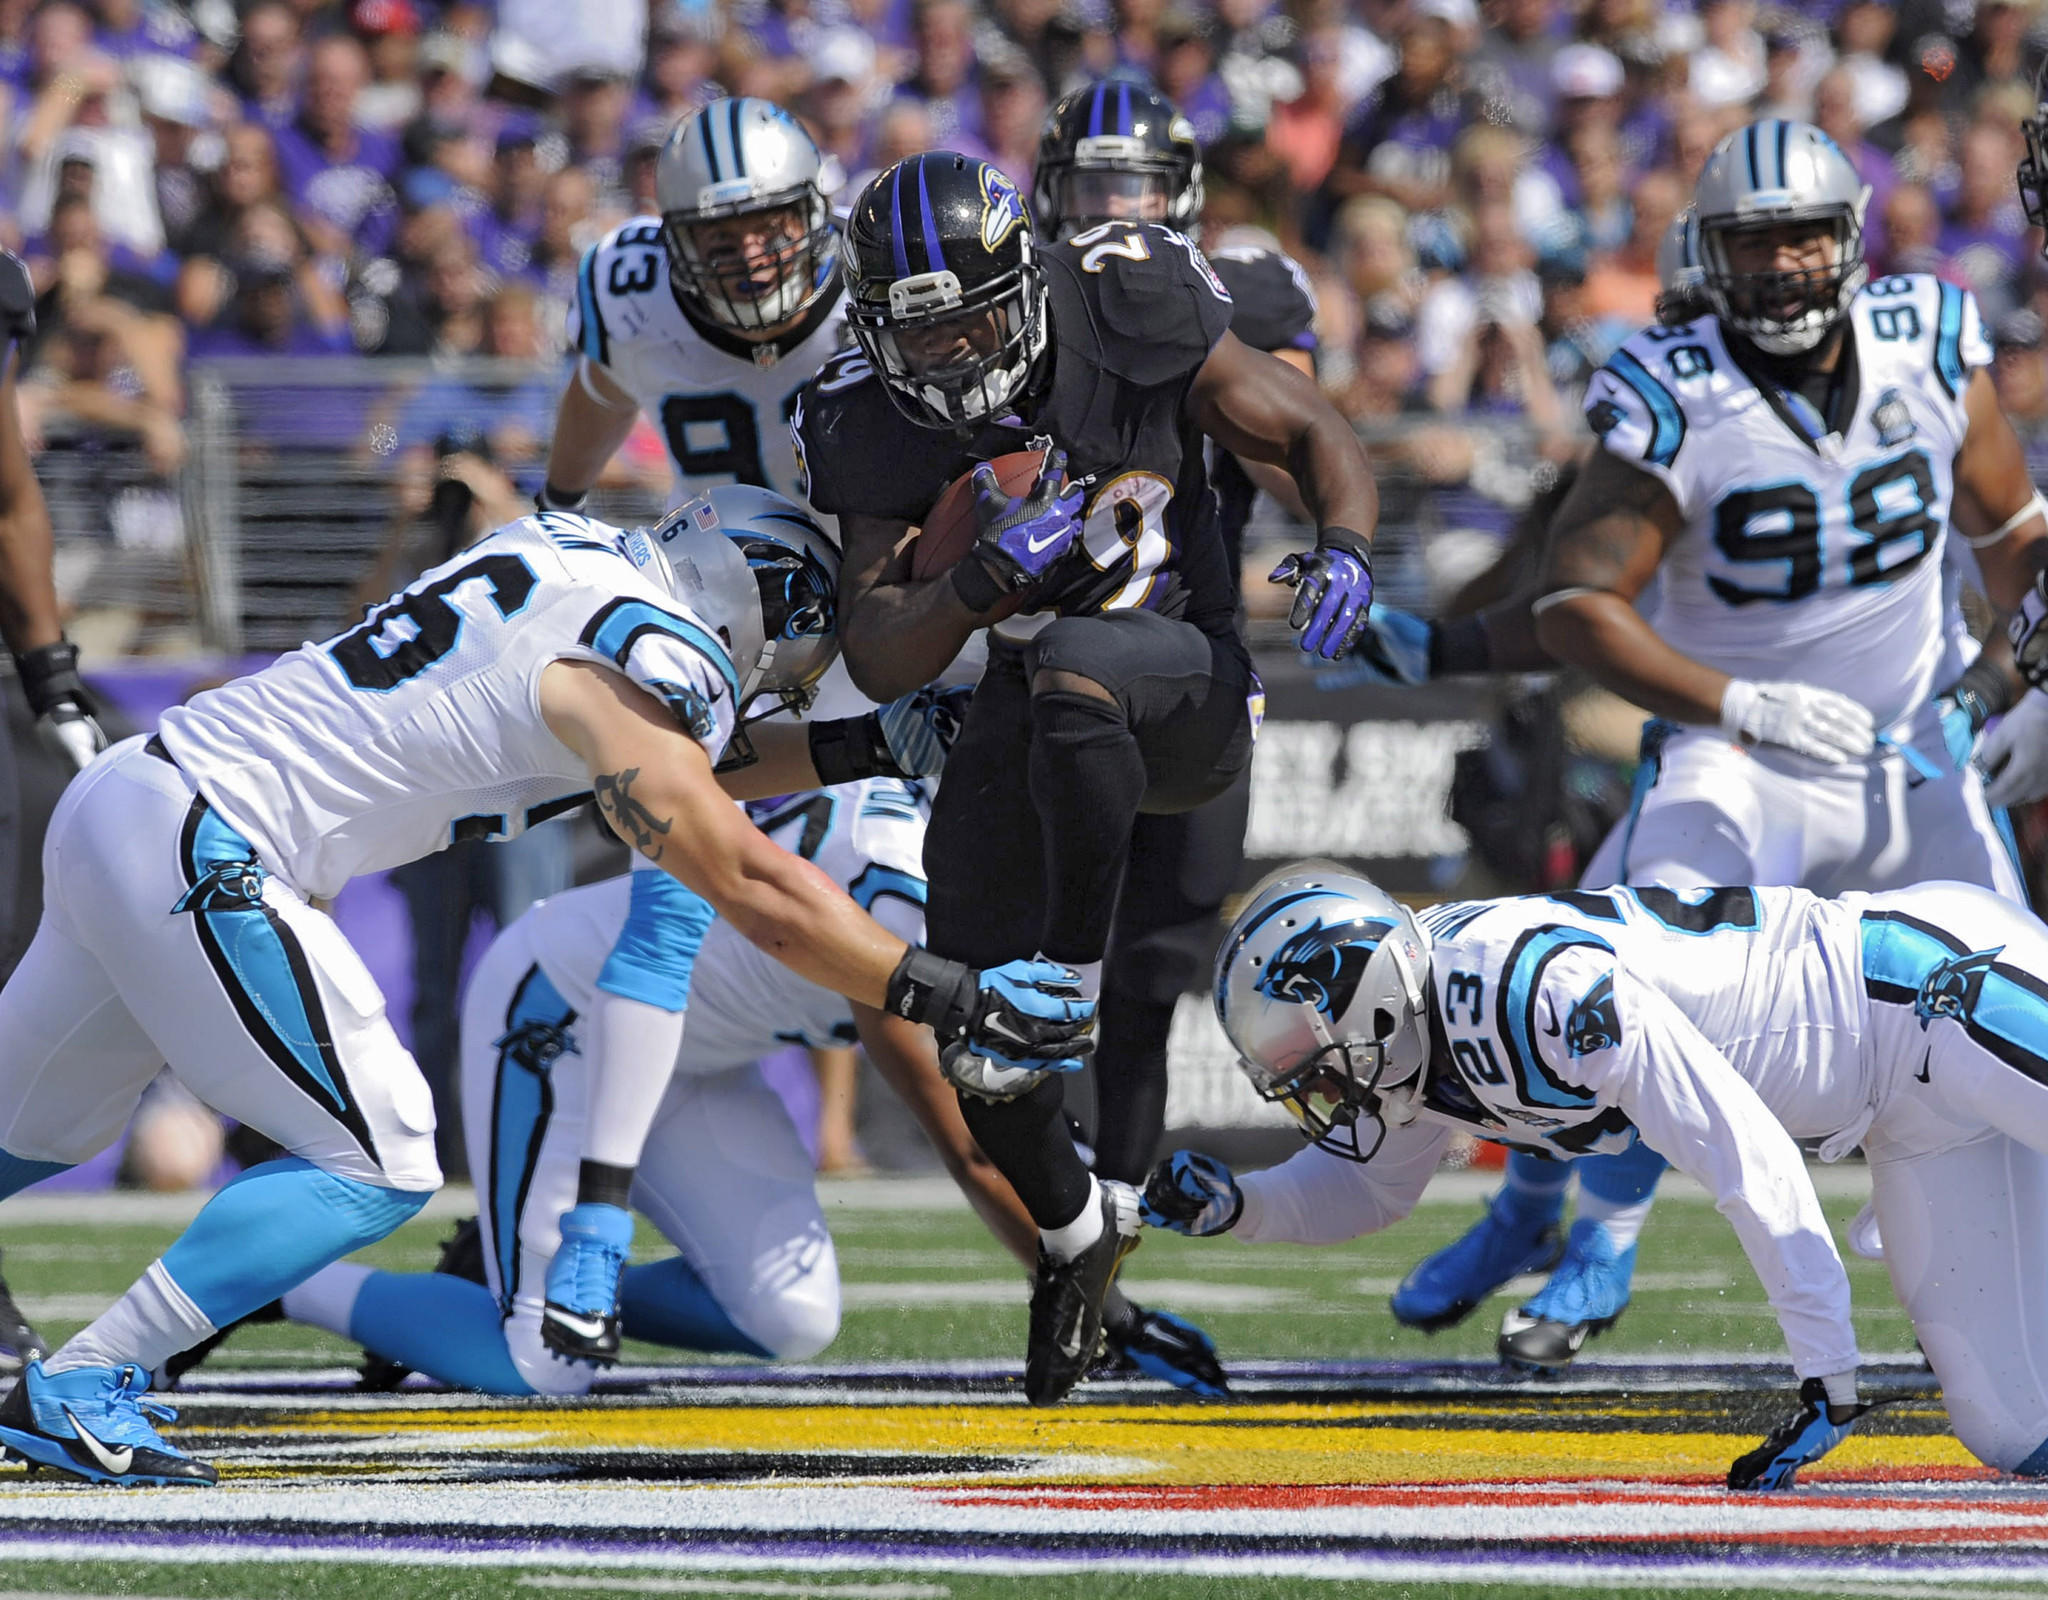 Panthers linebacker A.J. Klein (left) and cornerback Melvin White (23) converge on Ravens running back Justin Forsett, who gains first down yardage during the first quarter.